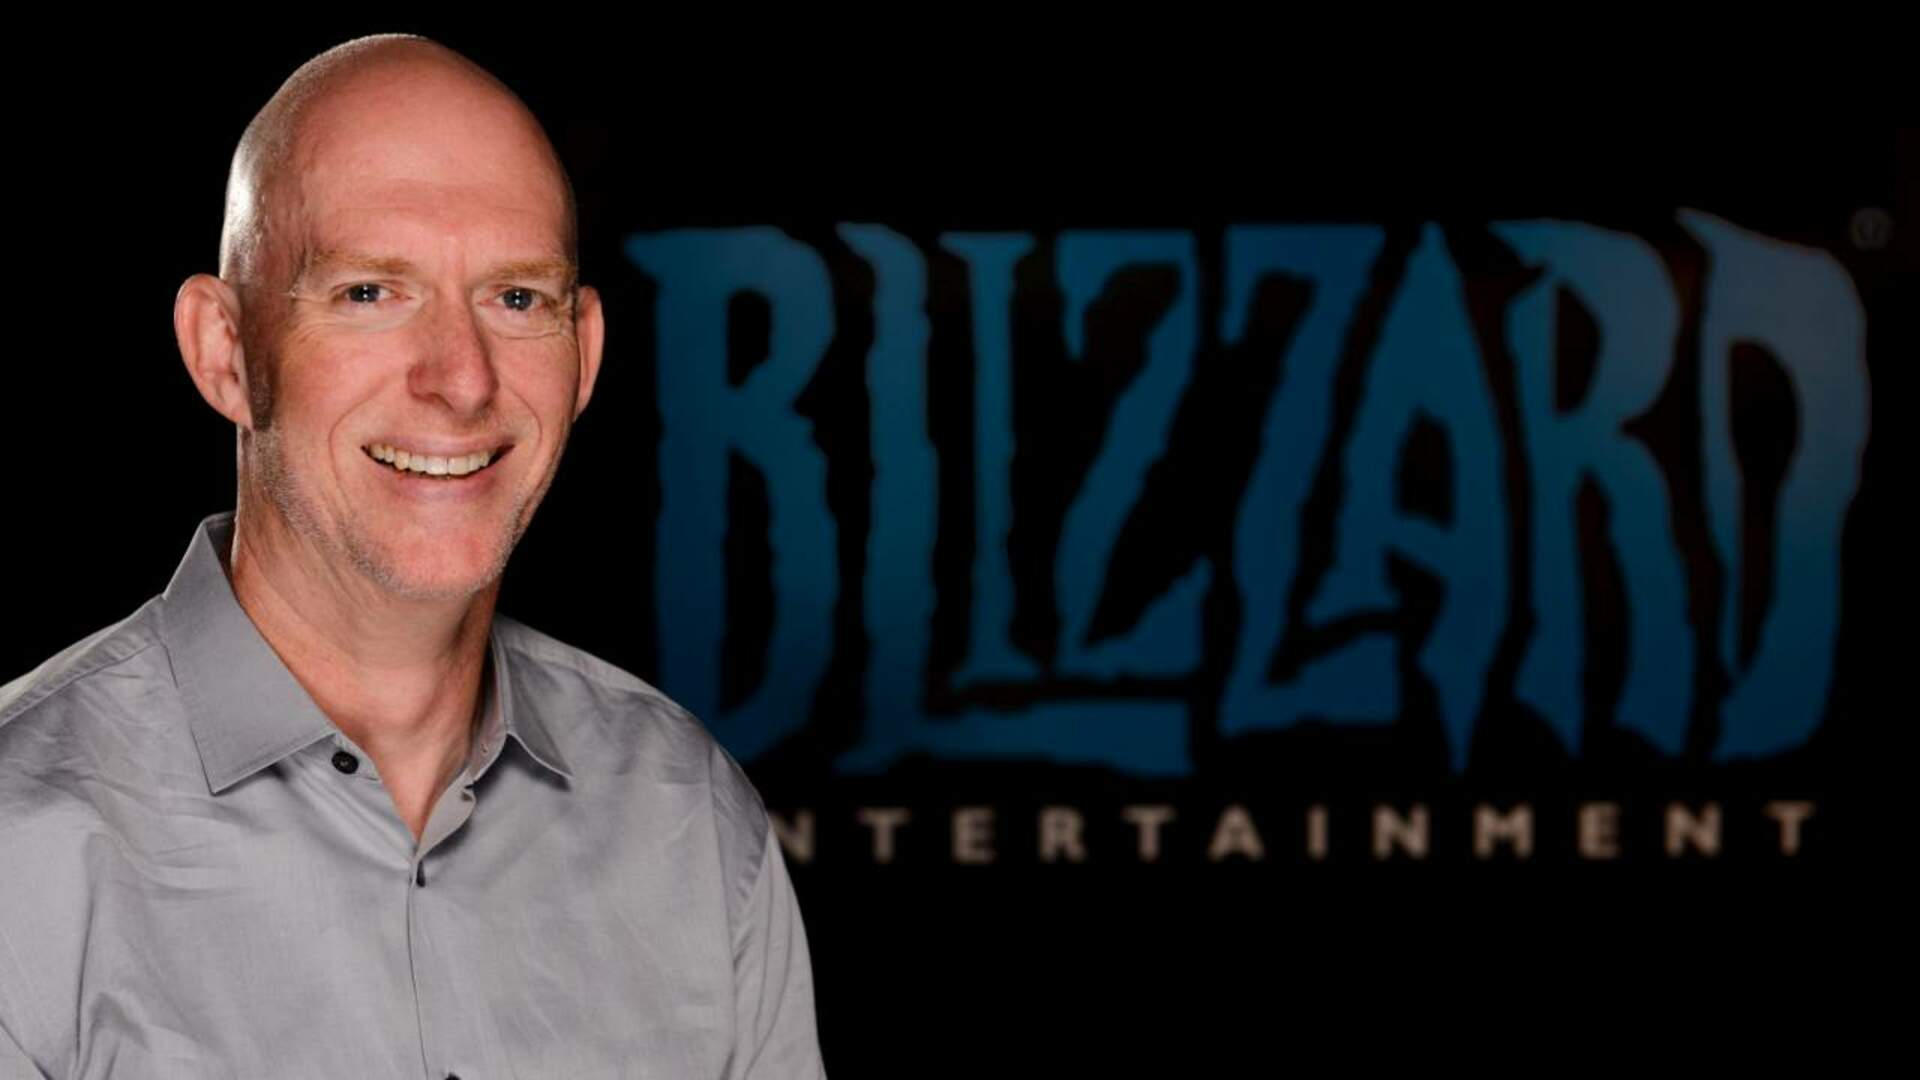 Another Blizzard Co-Founder Is Leaving After Almost 30 Years With The Company